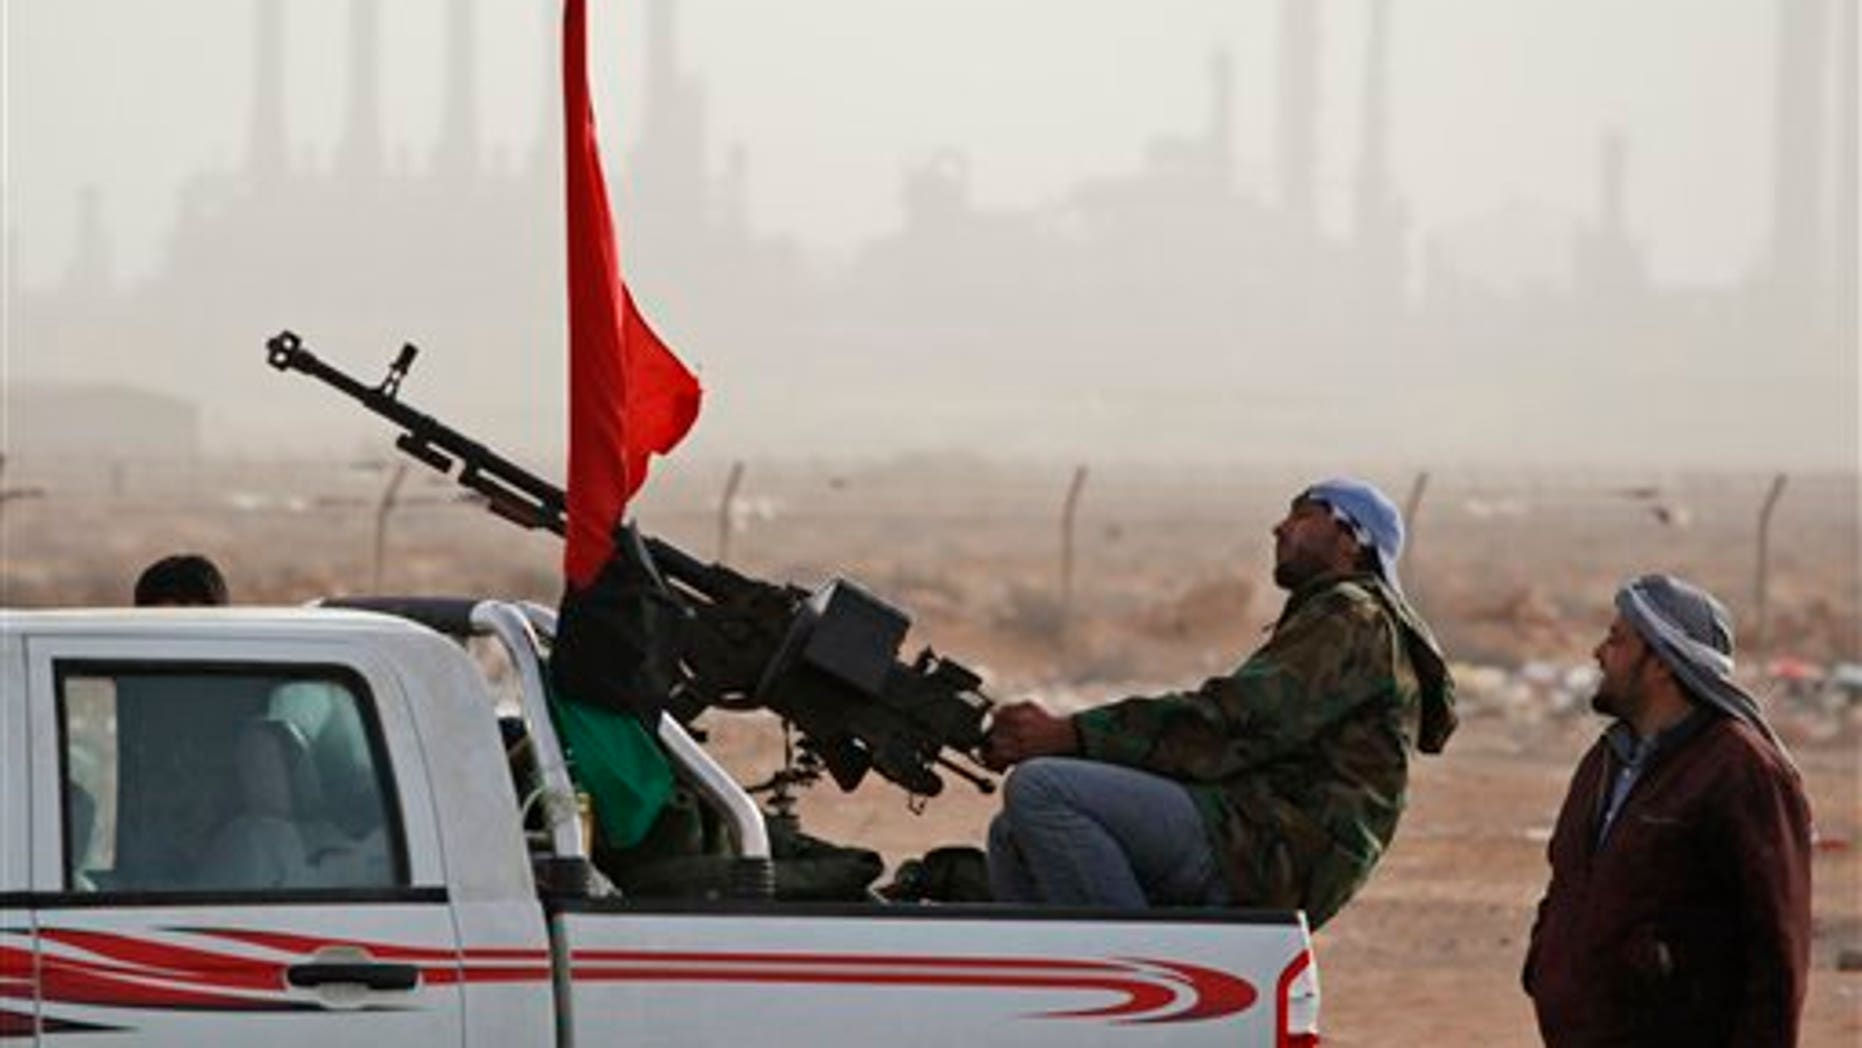 March 5: Libyan rebels who are part of the forces against Libyan leader Muammar al-Qaddafi guard outside the refinery after their victory in fighting against troops loyal to Qaddafi in the oil town of Ras Lanuf, eastern Libya.